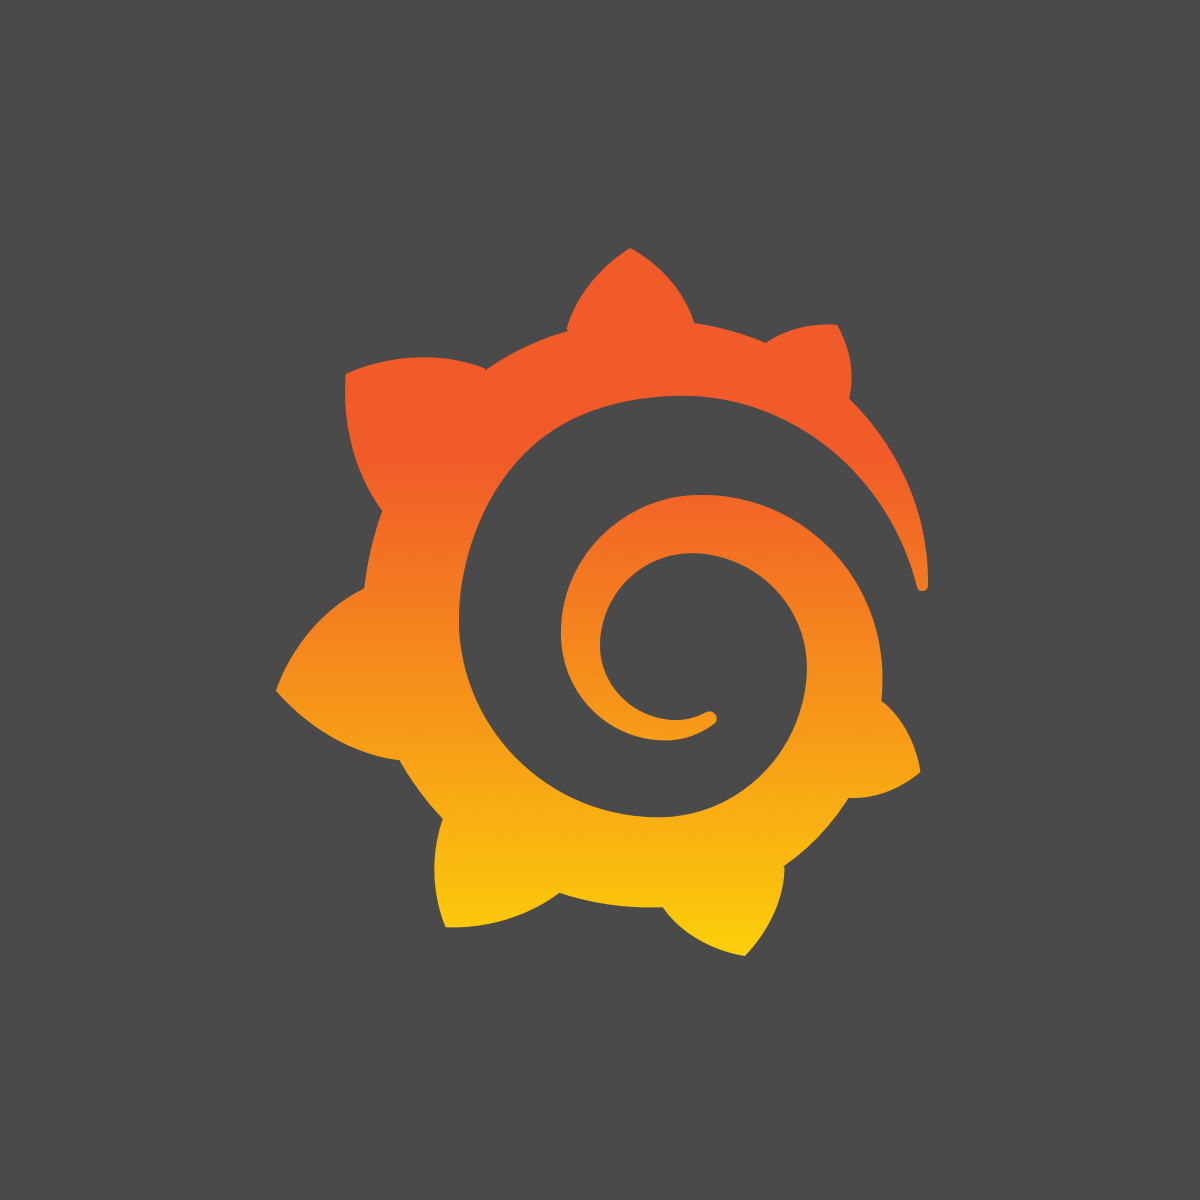 Initializing Grafana with preconfigured dashboards | OpsTips